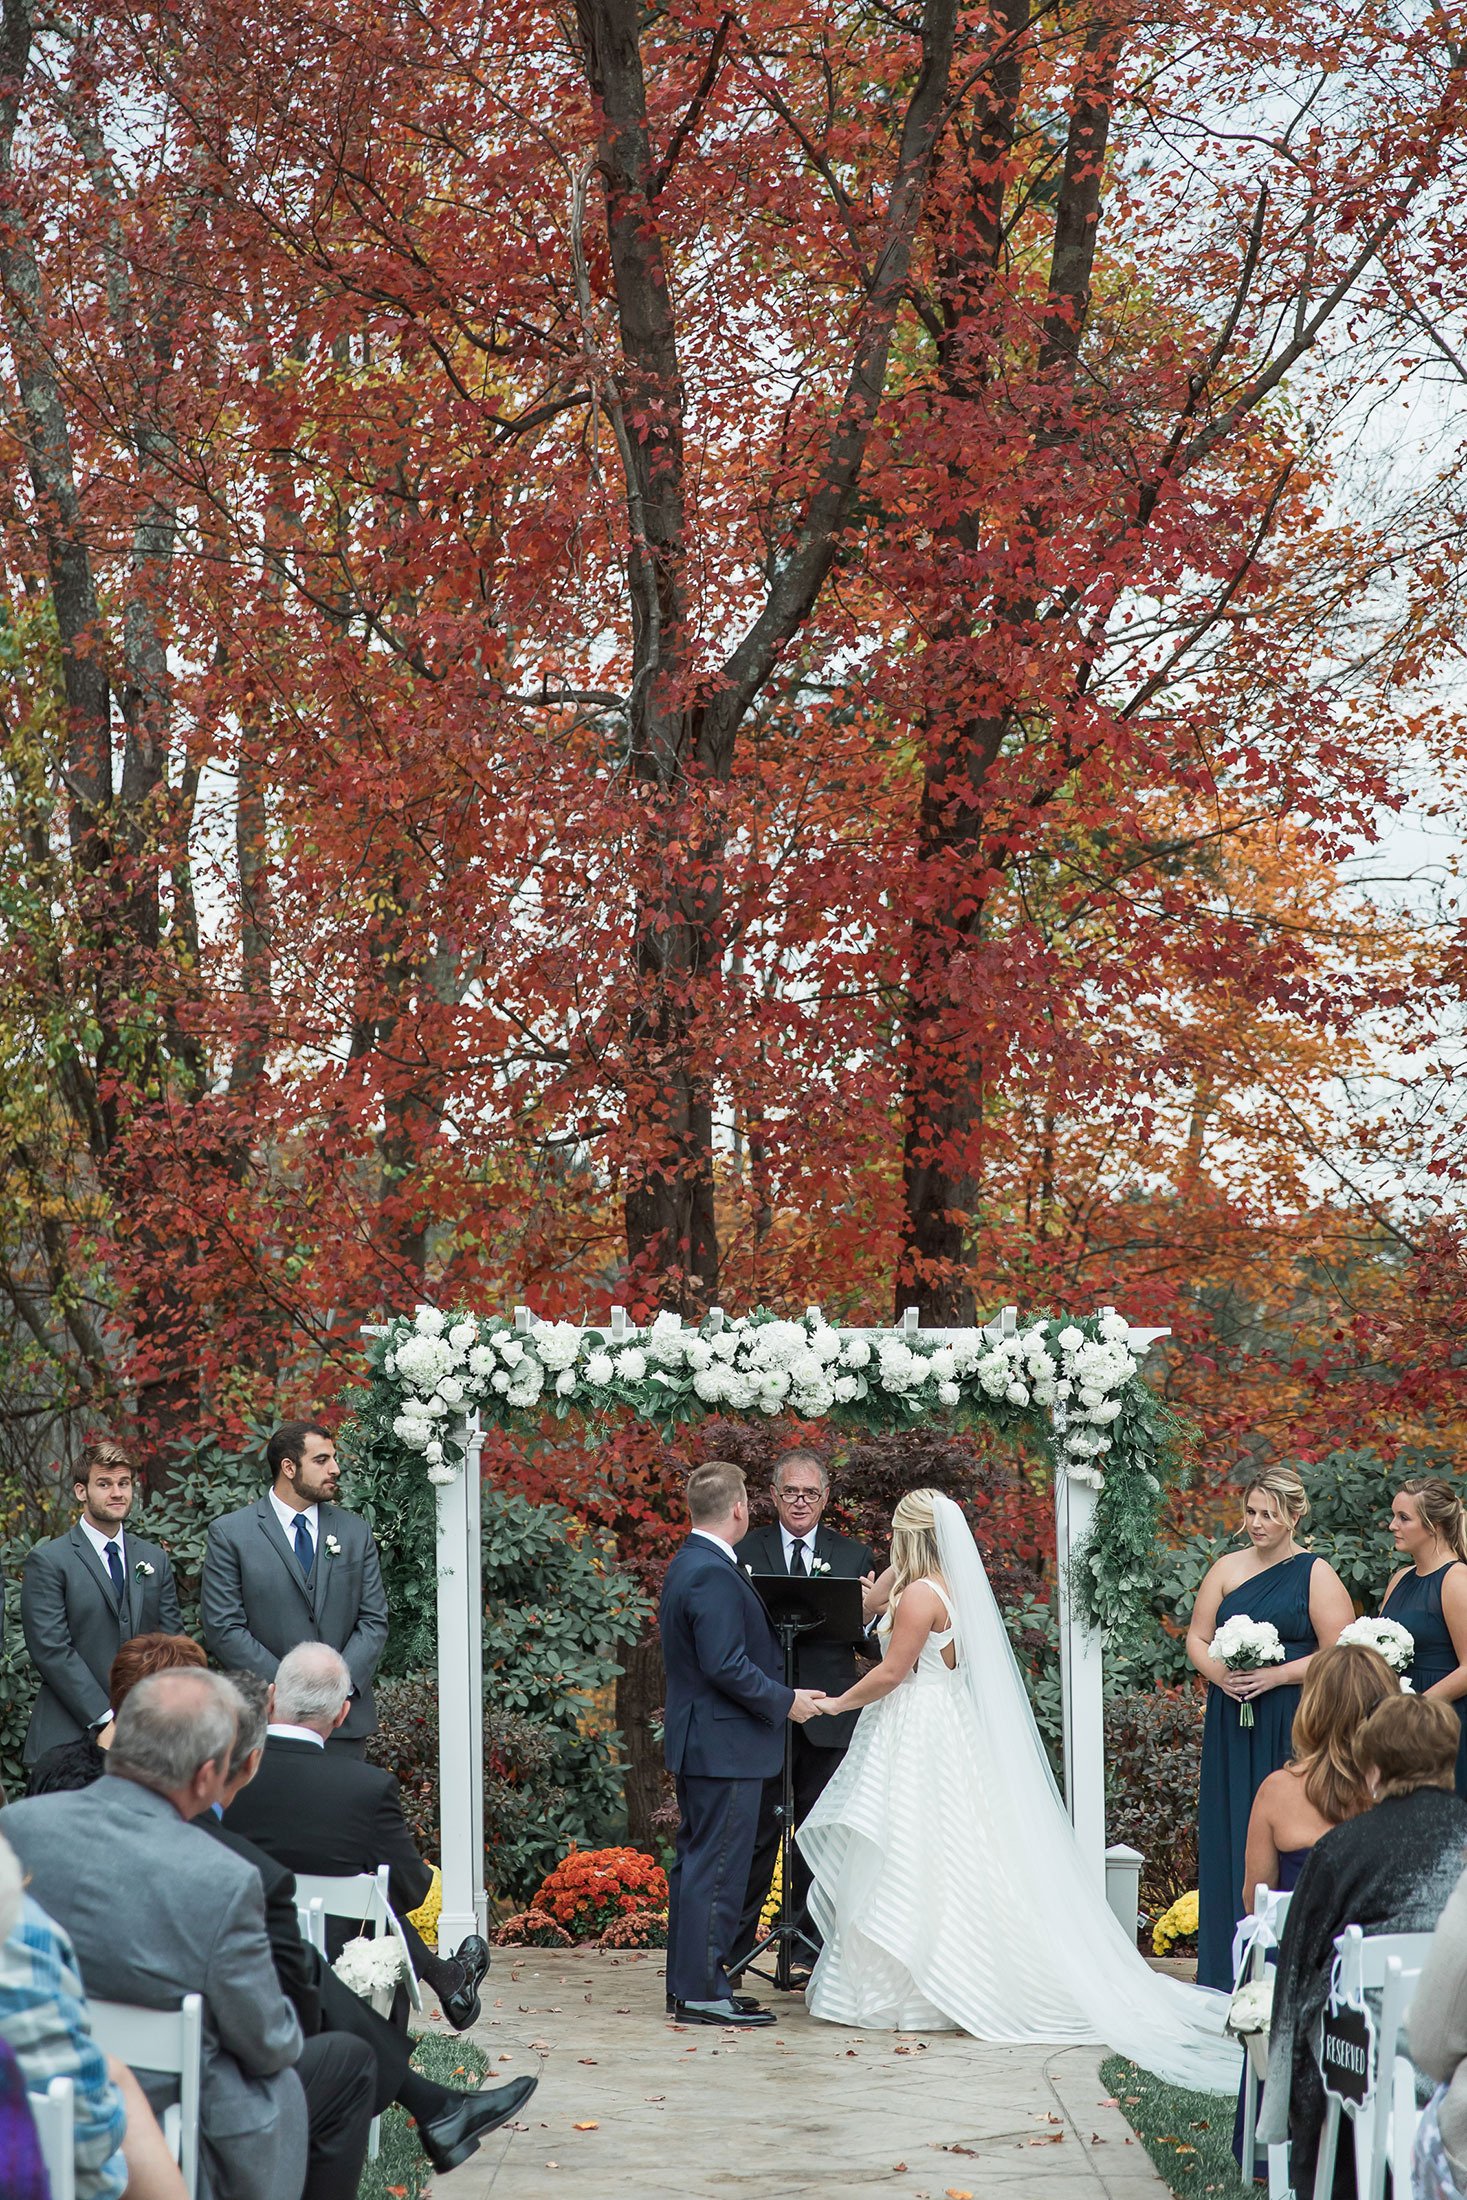 Photography | Outdoor ceremony at Avenir in Walpole MA